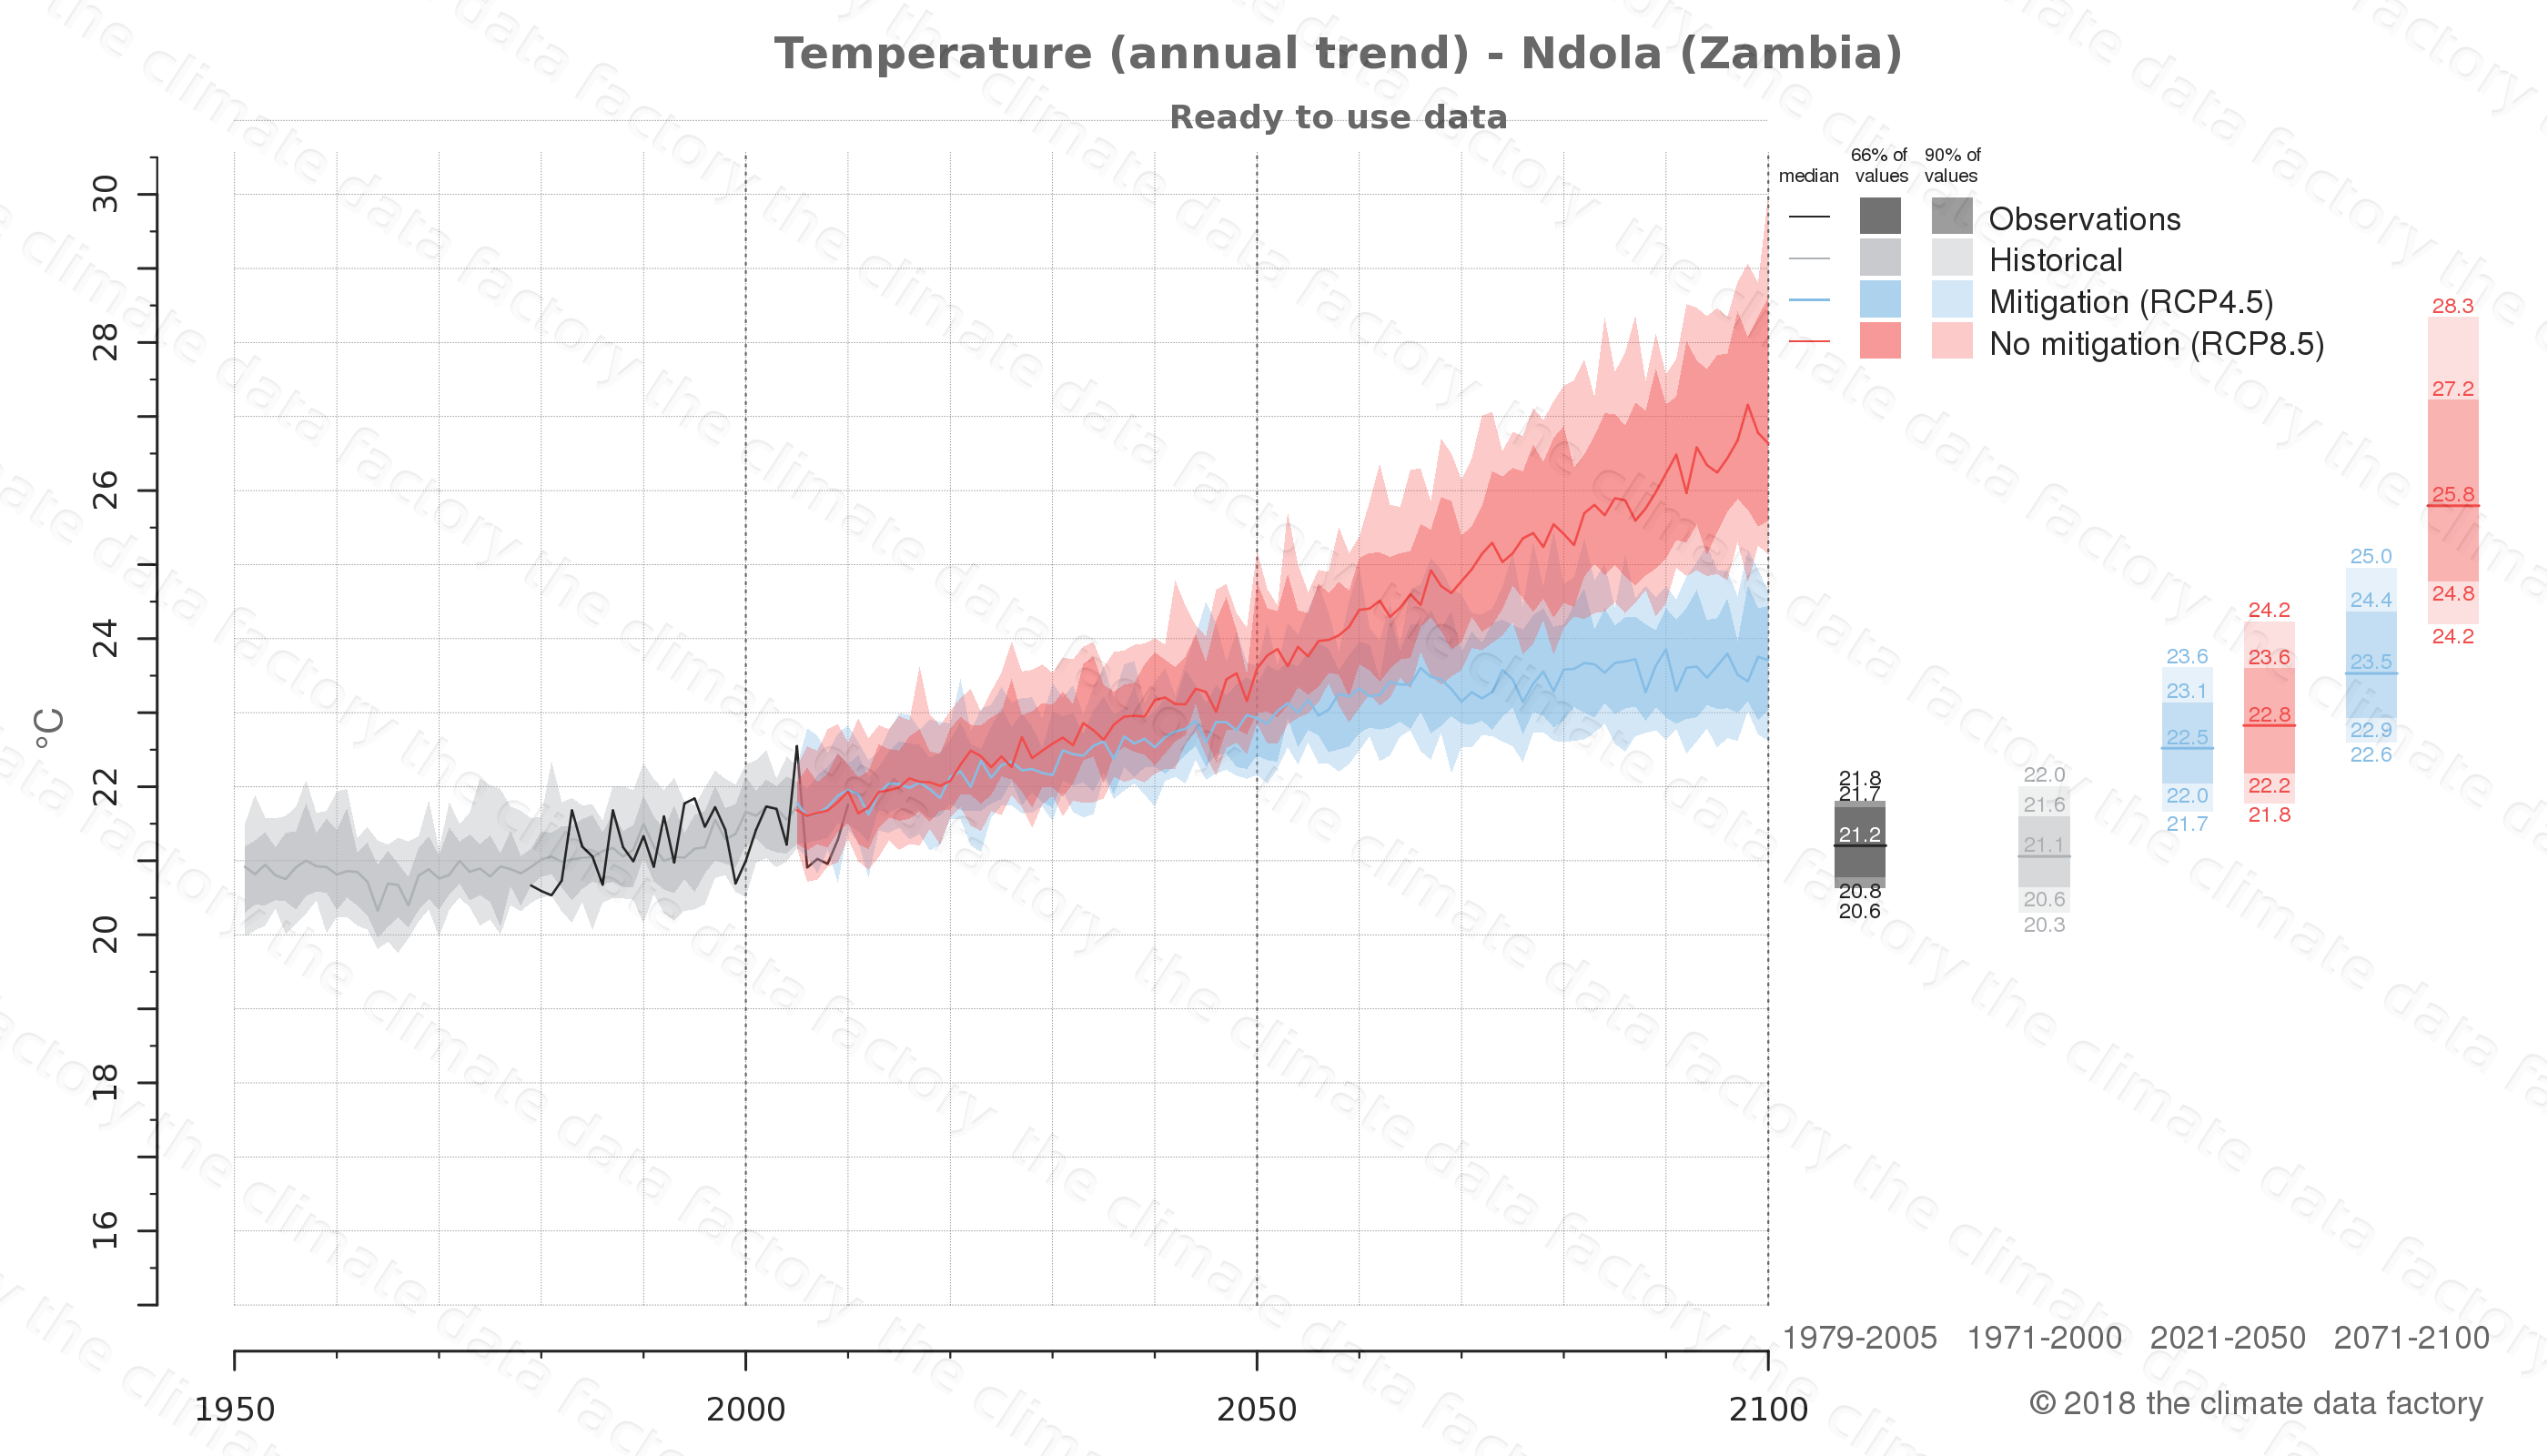 climate change data policy adaptation climate graph city data temperature ndola zambia